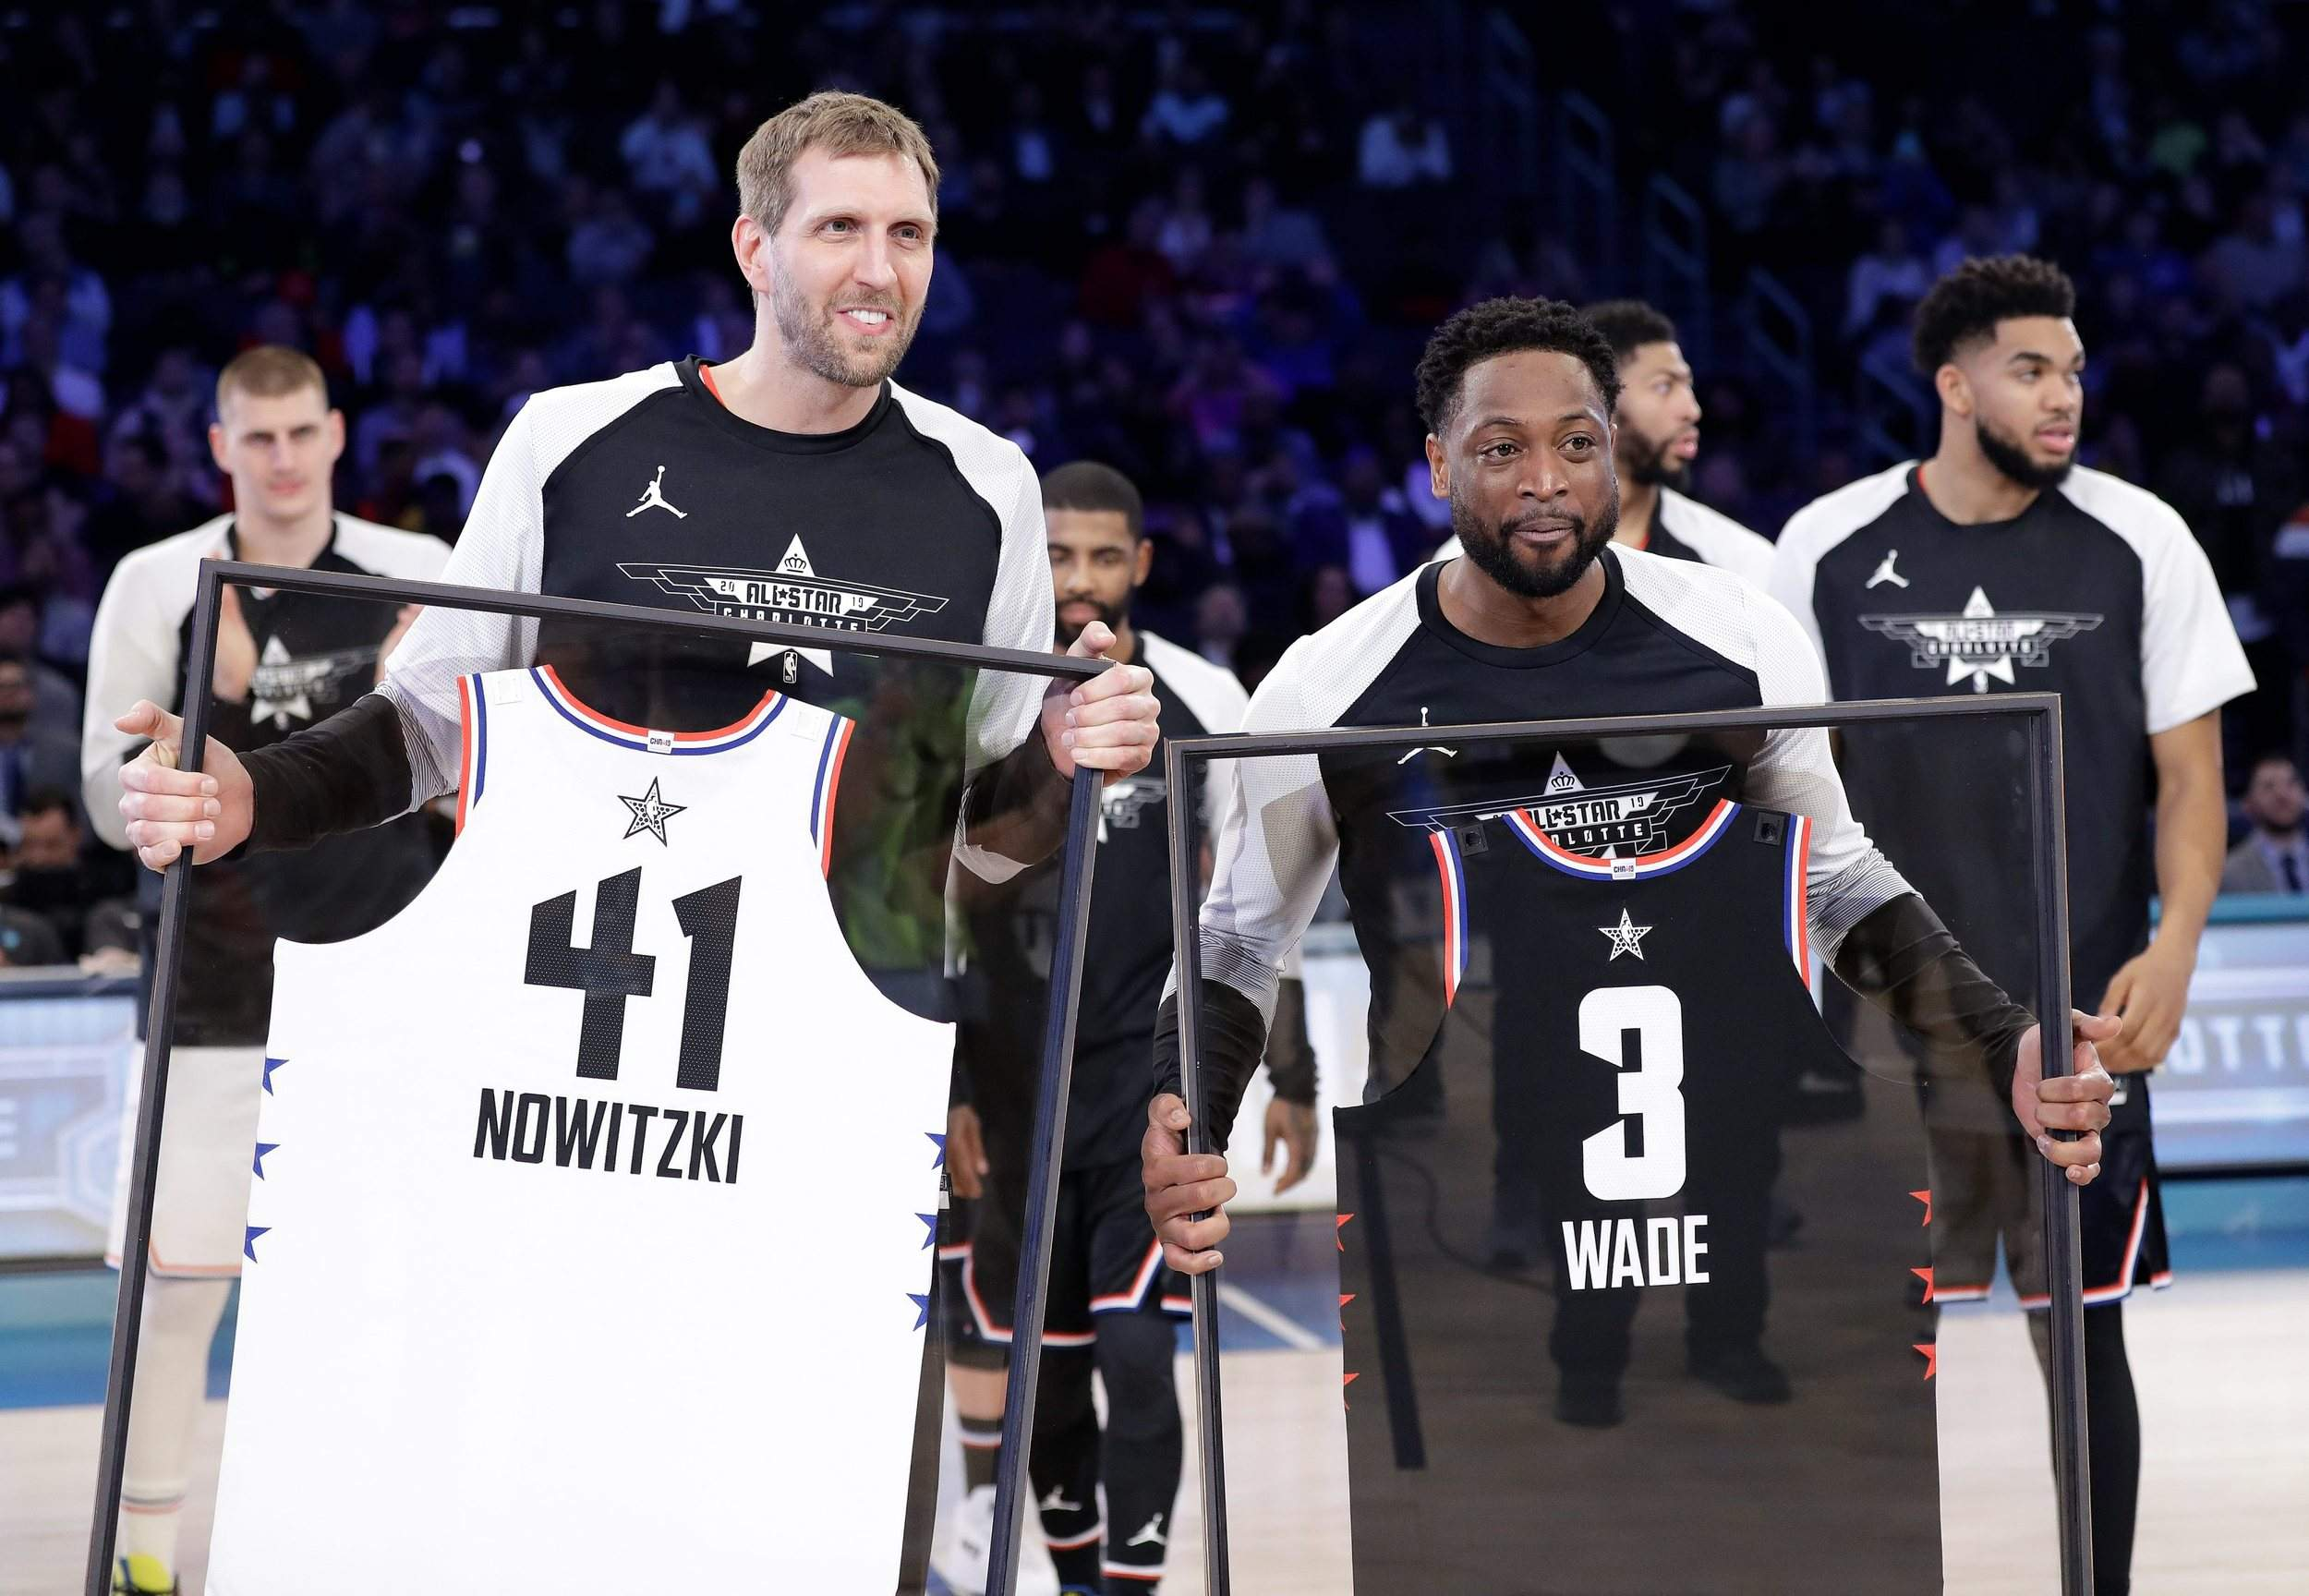 3a573c367d4 Team Giannis' Dirk Nowitzki, of the Dallas Mavericks and Team LeBron's  Dwyane Wade, of the Miami Heat are given jerseys during the second half of  Sunday's ...